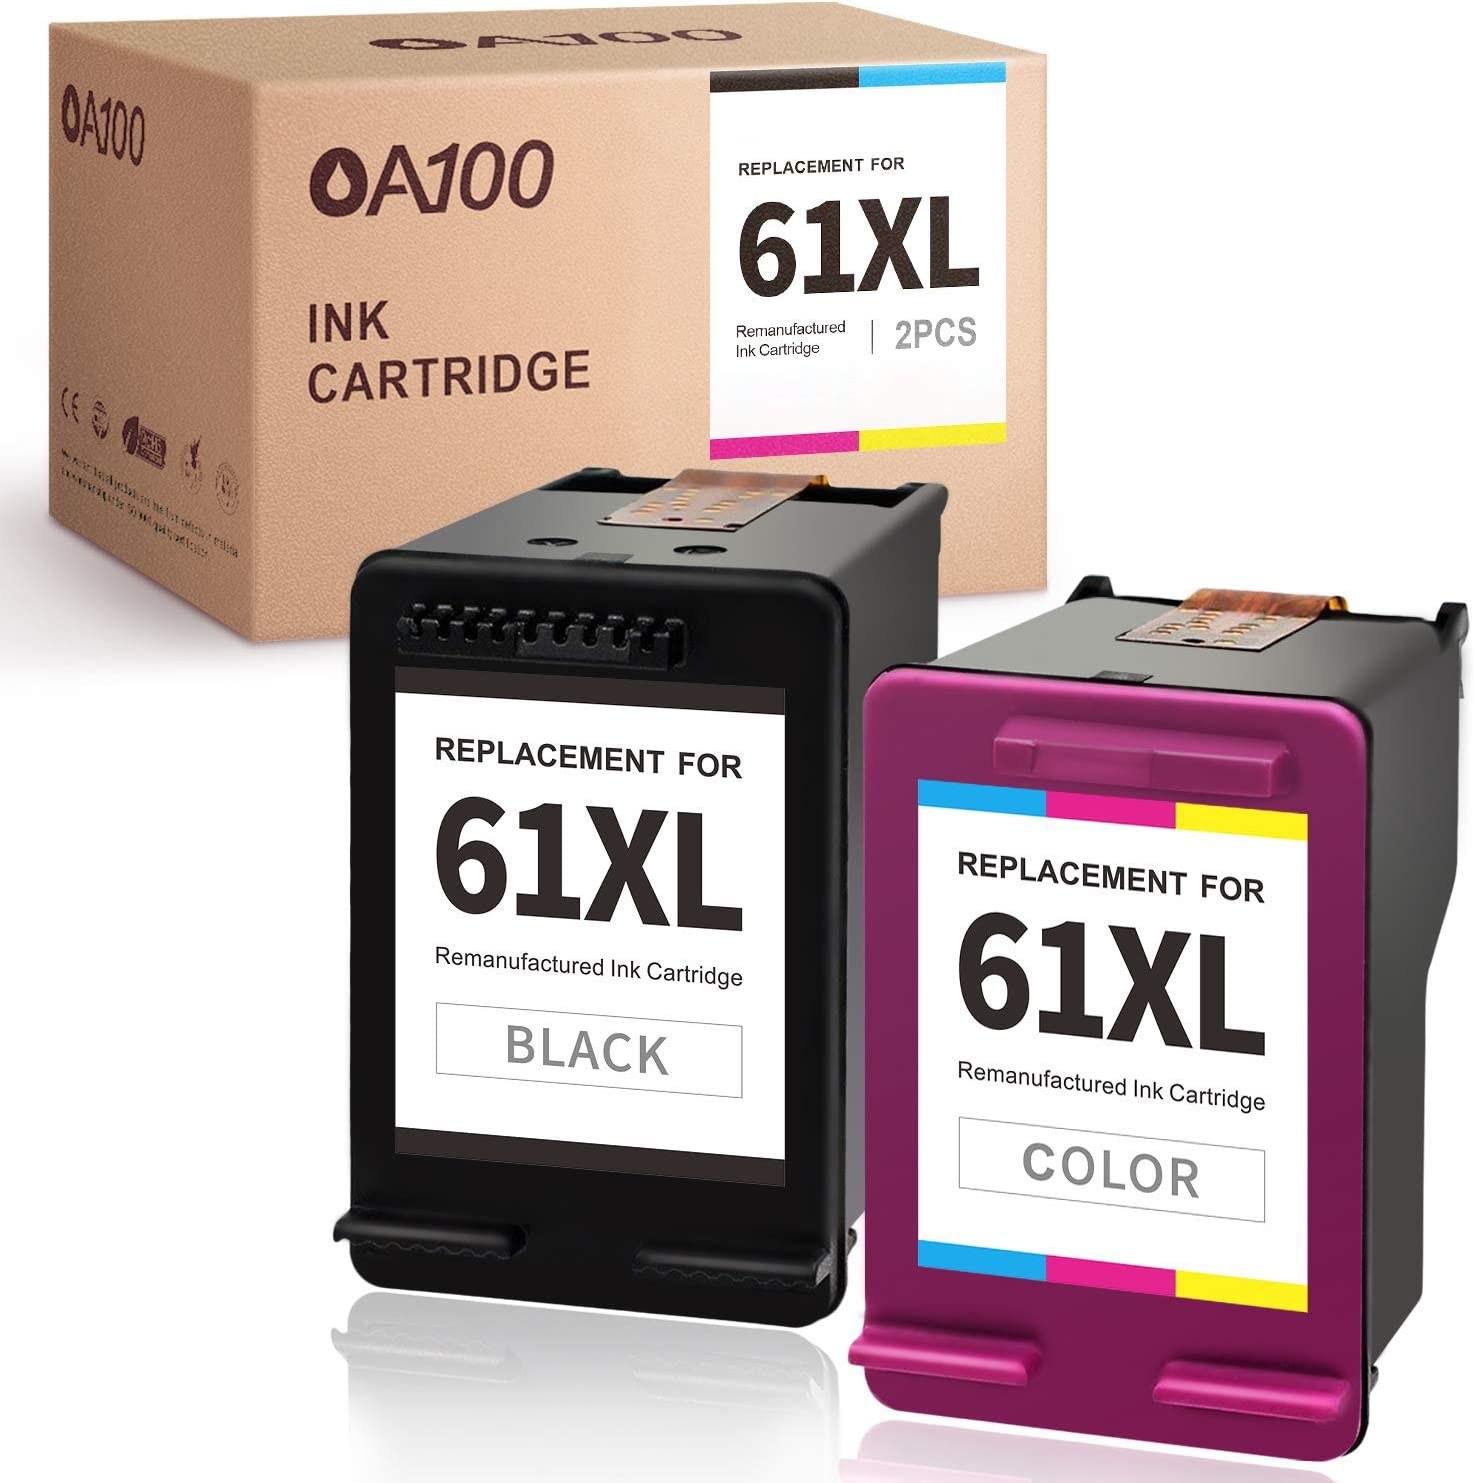 OA100 Remanufactured Ink Cartridge Replacement for HP 61 61XL 61 XL for Envy 5530 4500 4502 5535 OfficeJet 4630 4635 4632 DeskJet 2540 2541 2542 1010 3050A 3510 1510 1050 (1 Black, 1 Tri-Color)